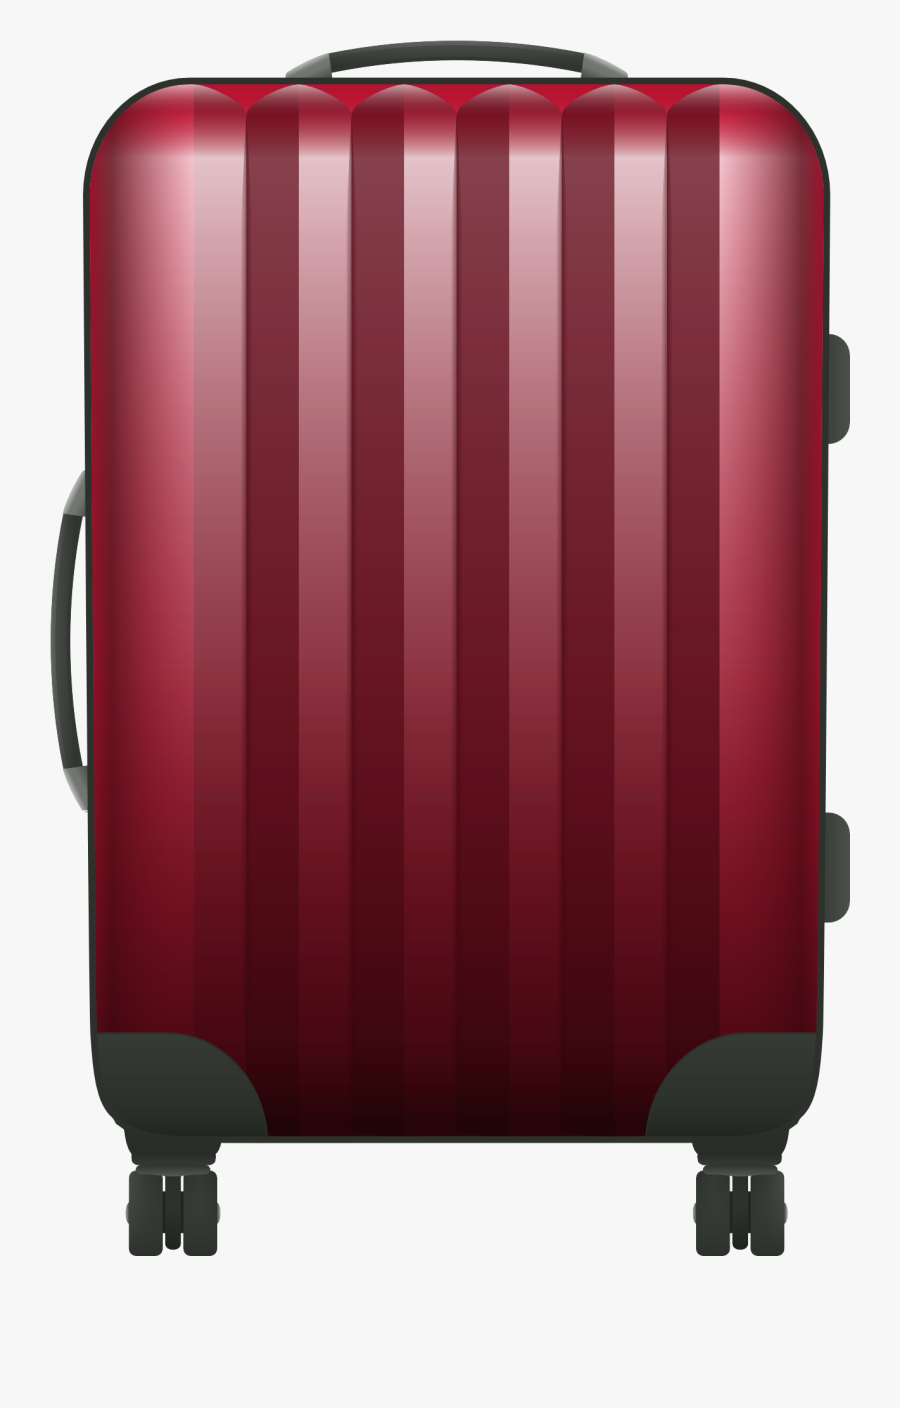 Luggage Clipart Vector - Travel Bags Png Vector, Transparent Clipart